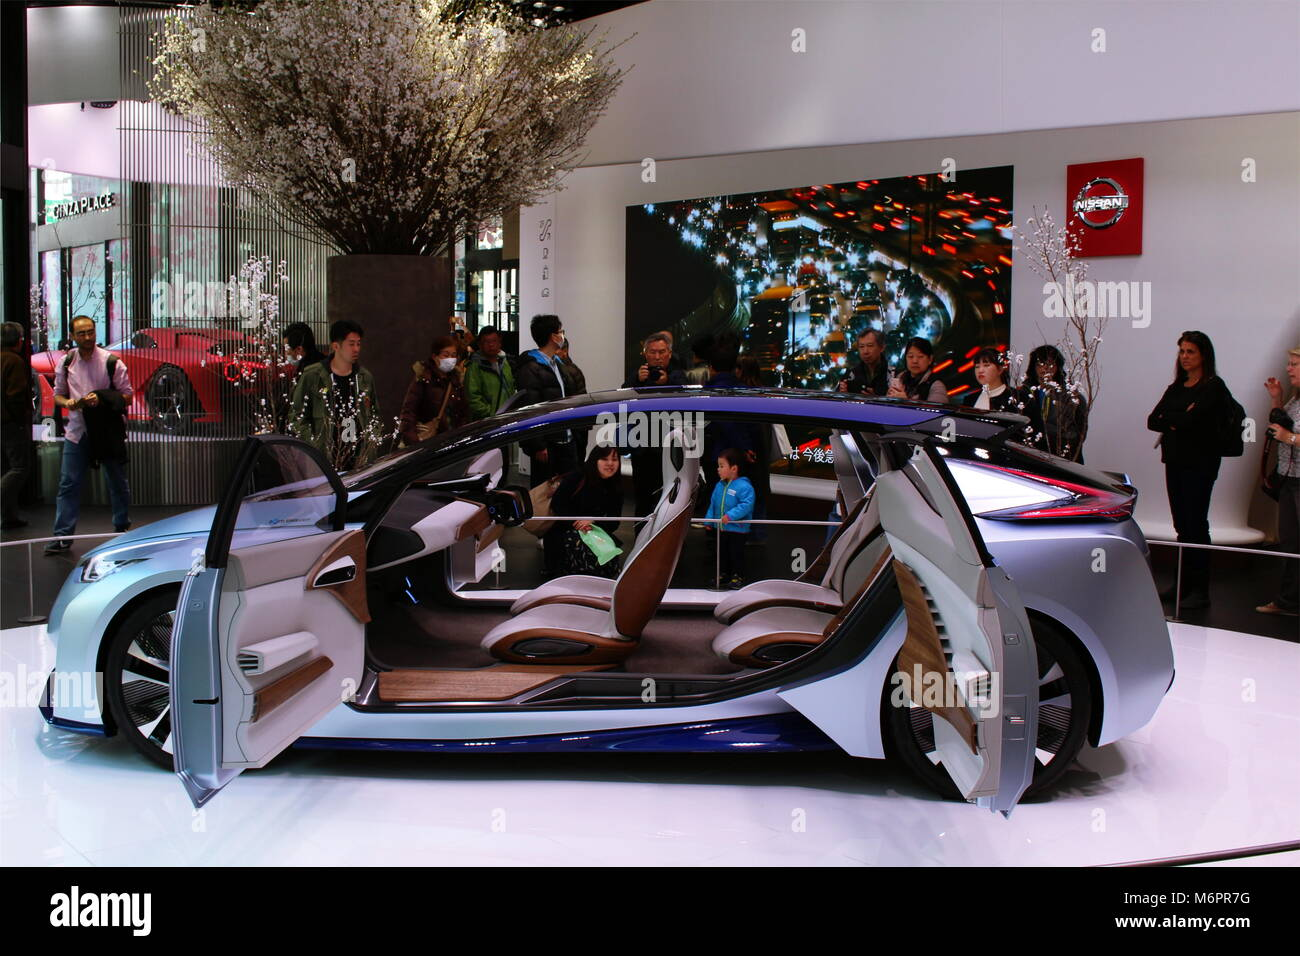 A Nissan IDS Concept on display at the Nissan Crossing showroom in Ginza Place. (March 2018) - Stock Image